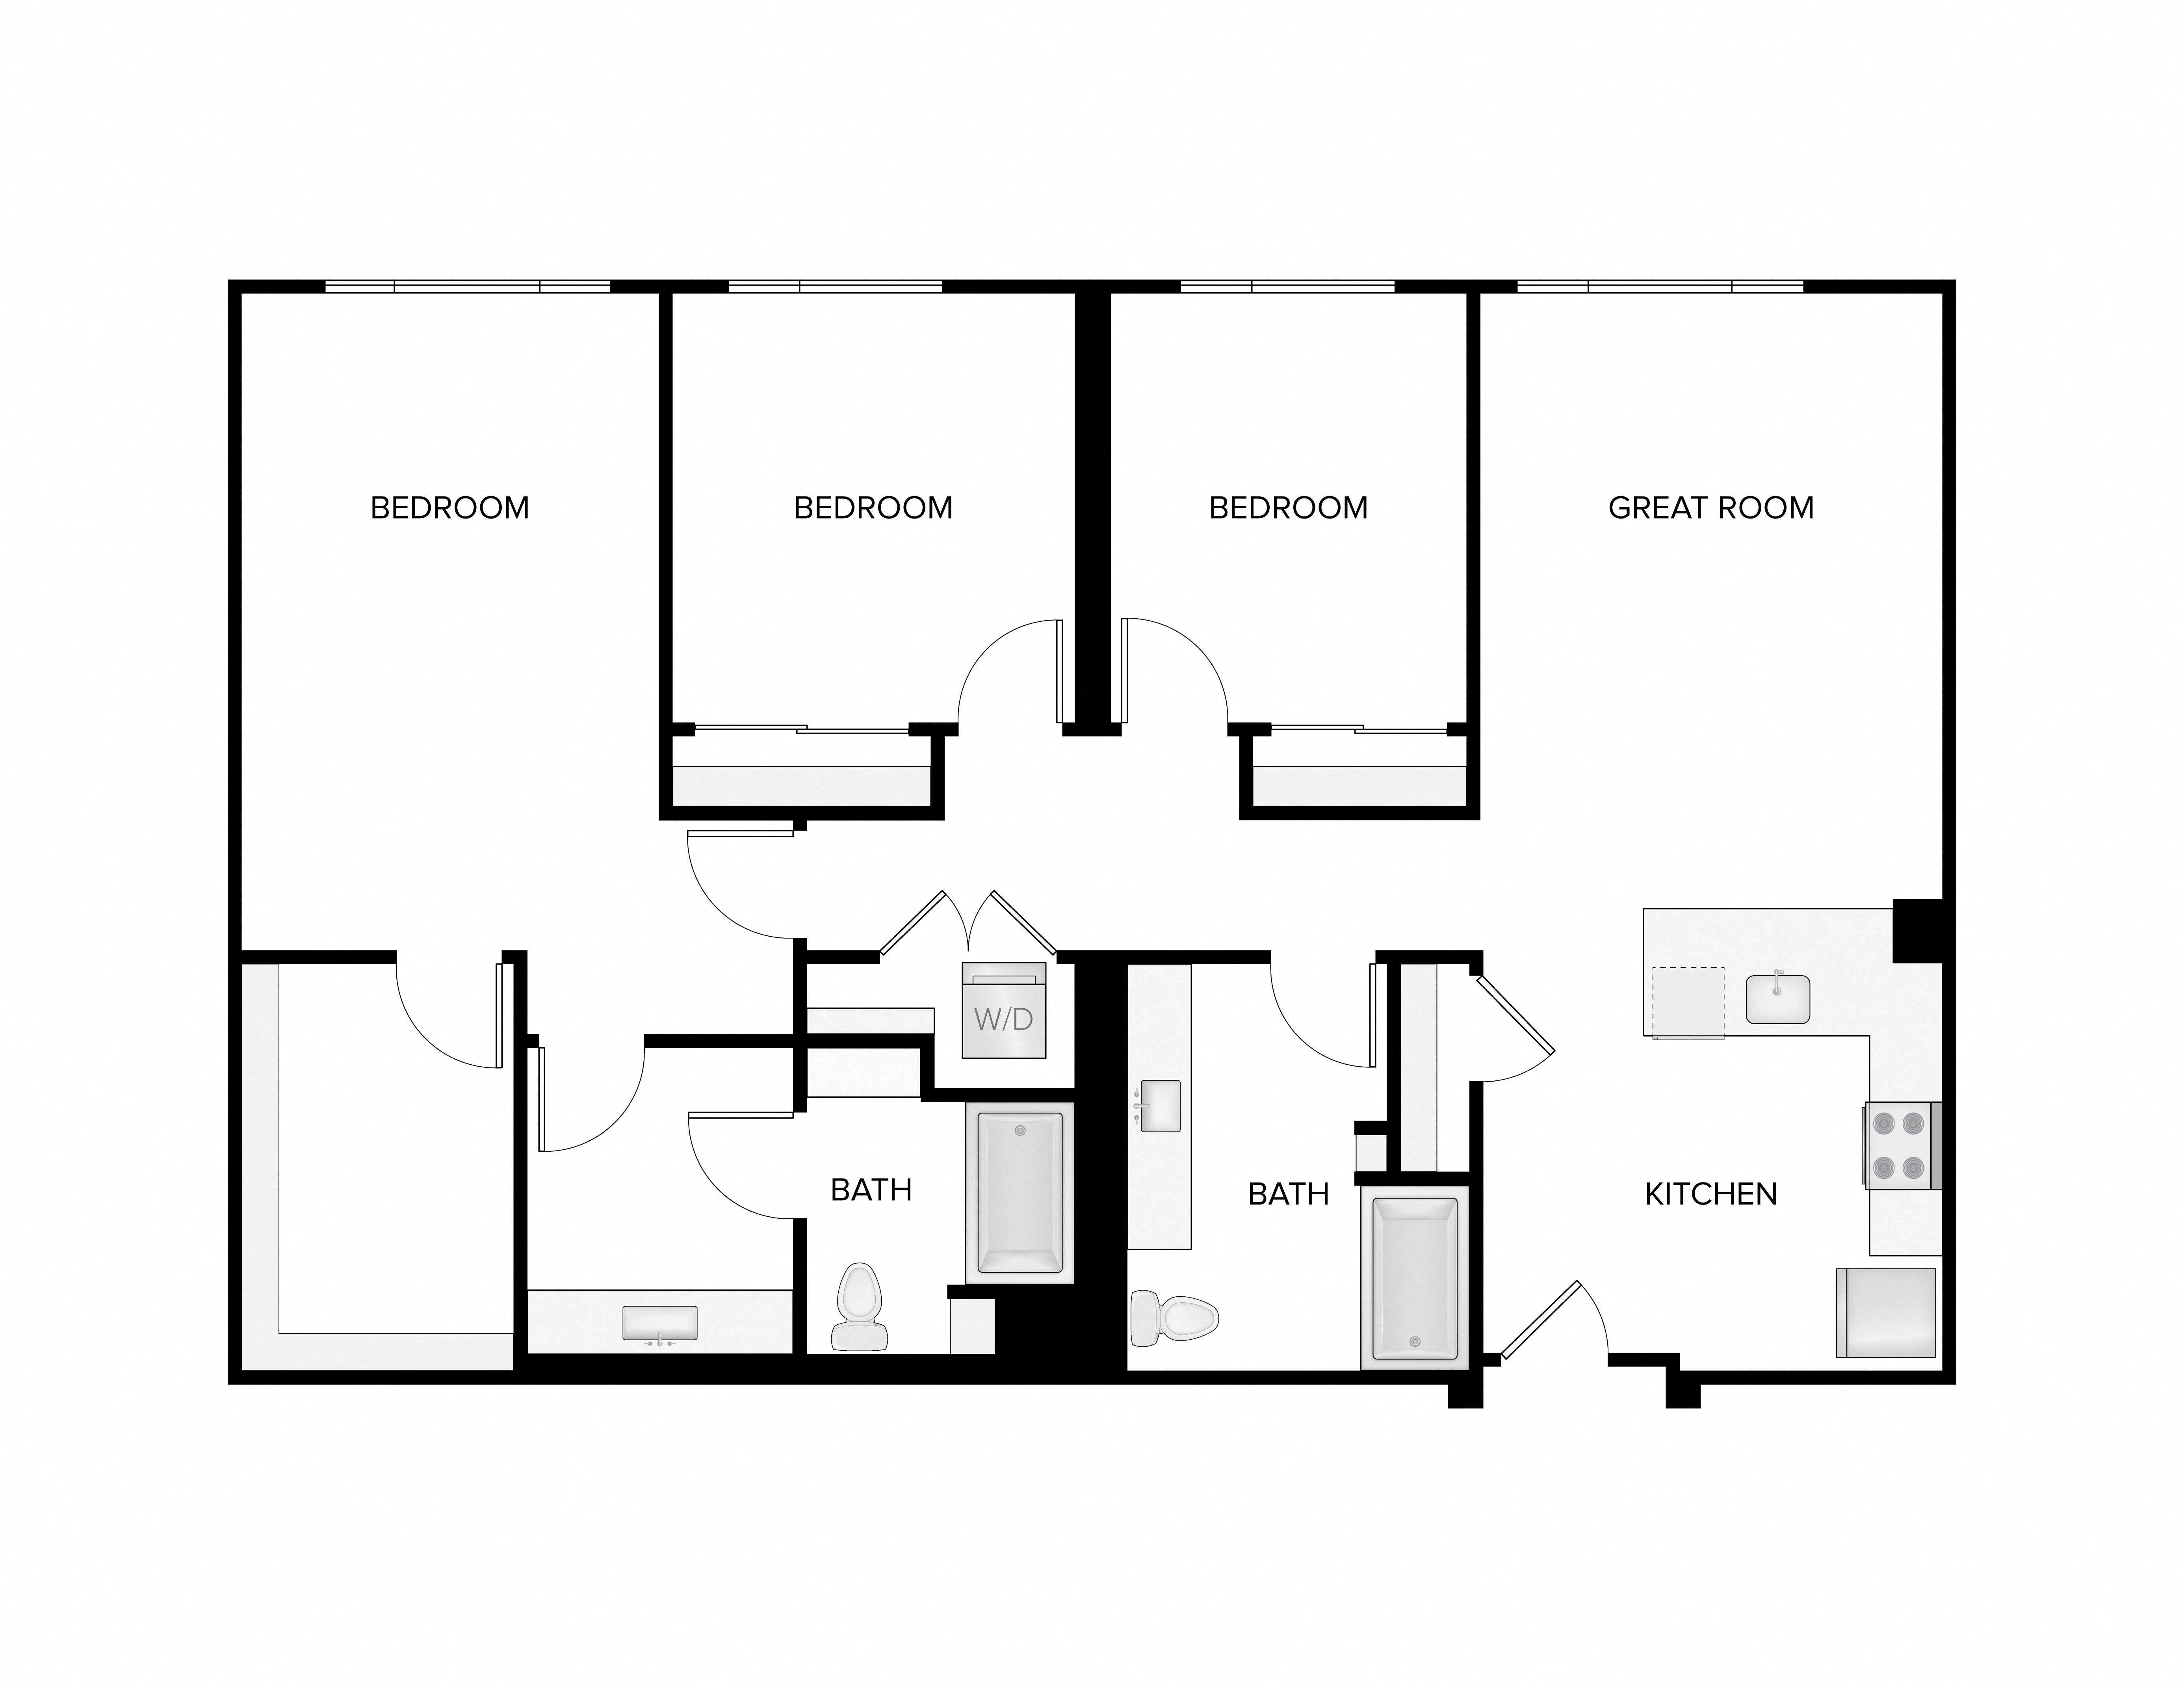 Diagram of the Fallon Deluxe Variation floor plan. Three bedrooms, two bathrooms, an open kitchen and living area, and a washer dryer.